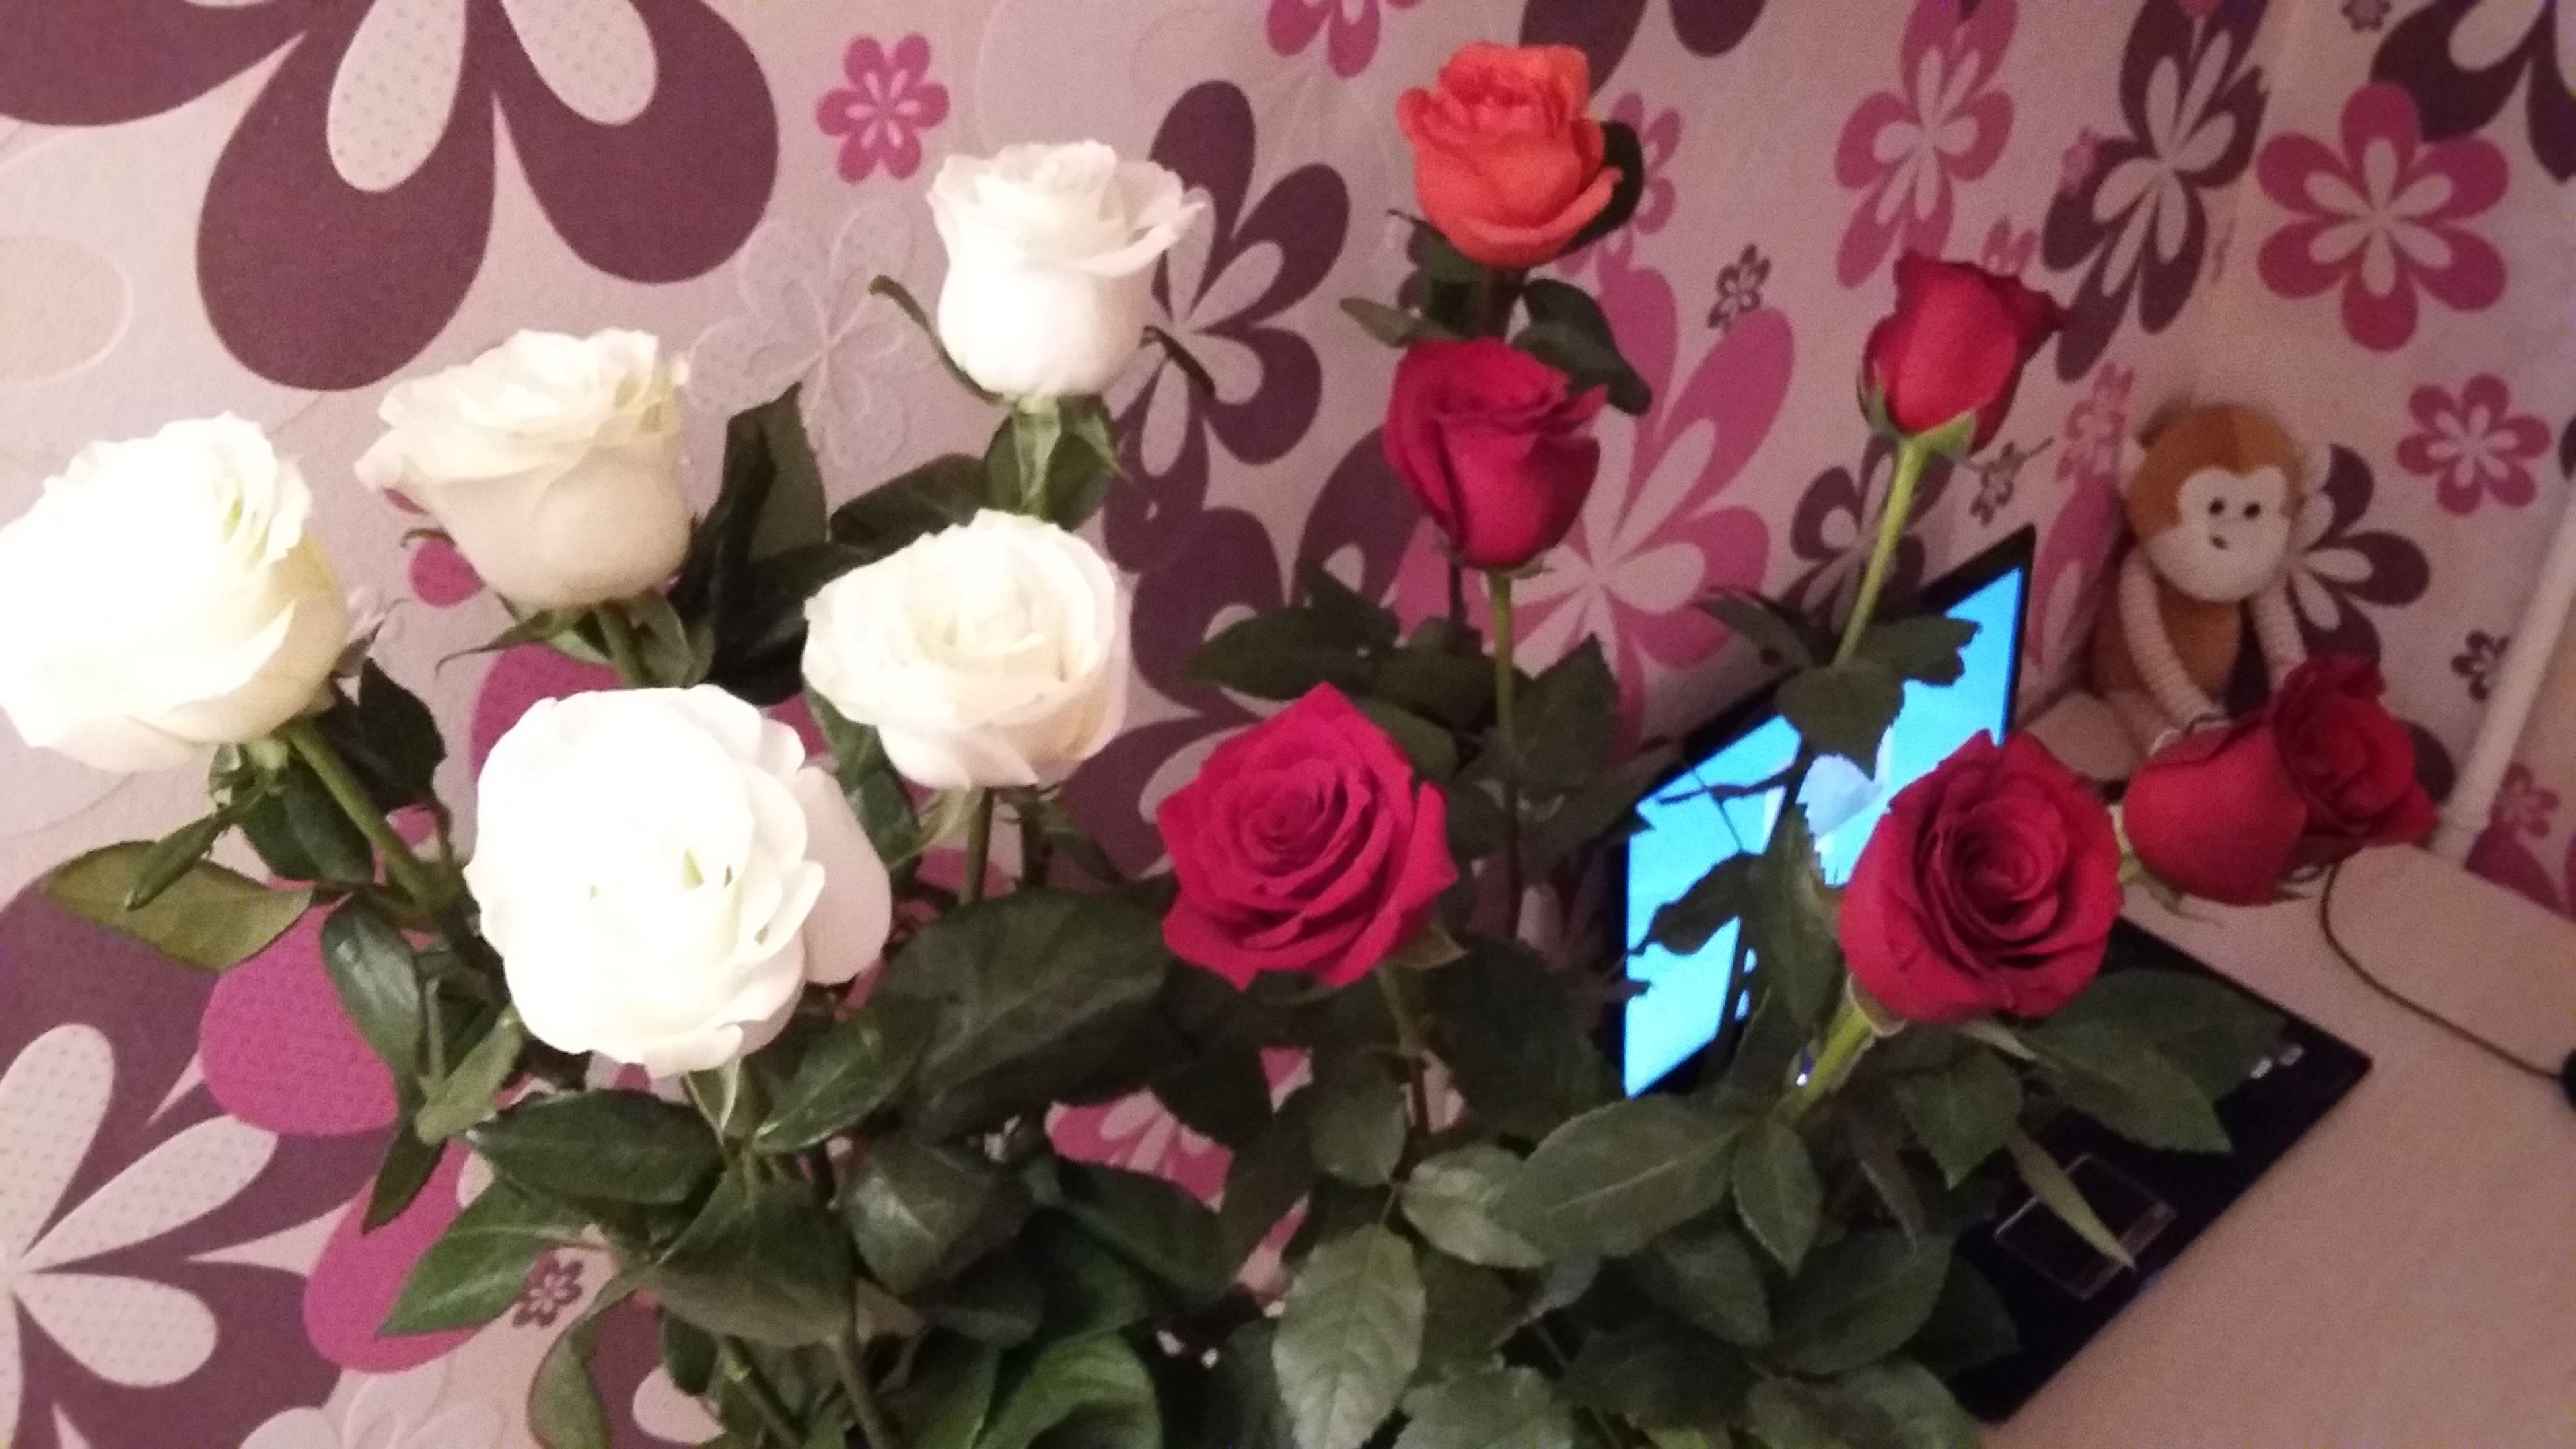 flower, indoors, petal, decoration, rose - flower, freshness, bouquet, fragility, vase, flower head, home interior, pink color, art and craft, art, creativity, close-up, flower arrangement, wall - building feature, no people, multi colored